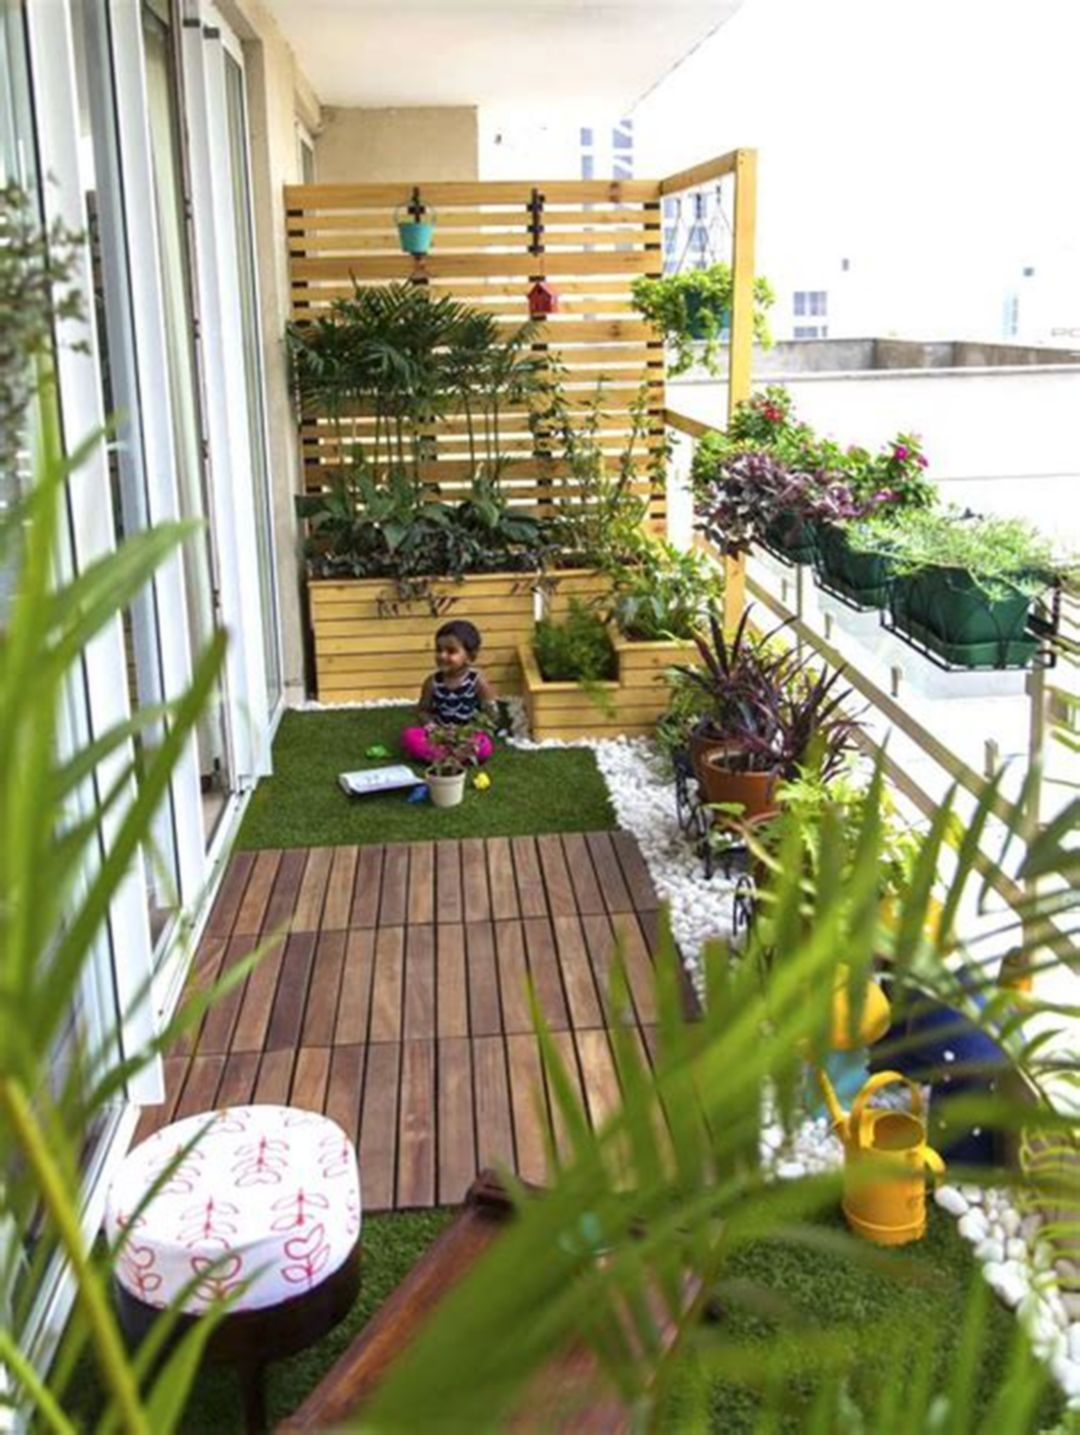 Pin By Mls01011255 On Backyard Patio Ideas Apartment Balcony Garden Small Balcony Garden Apartment Patio